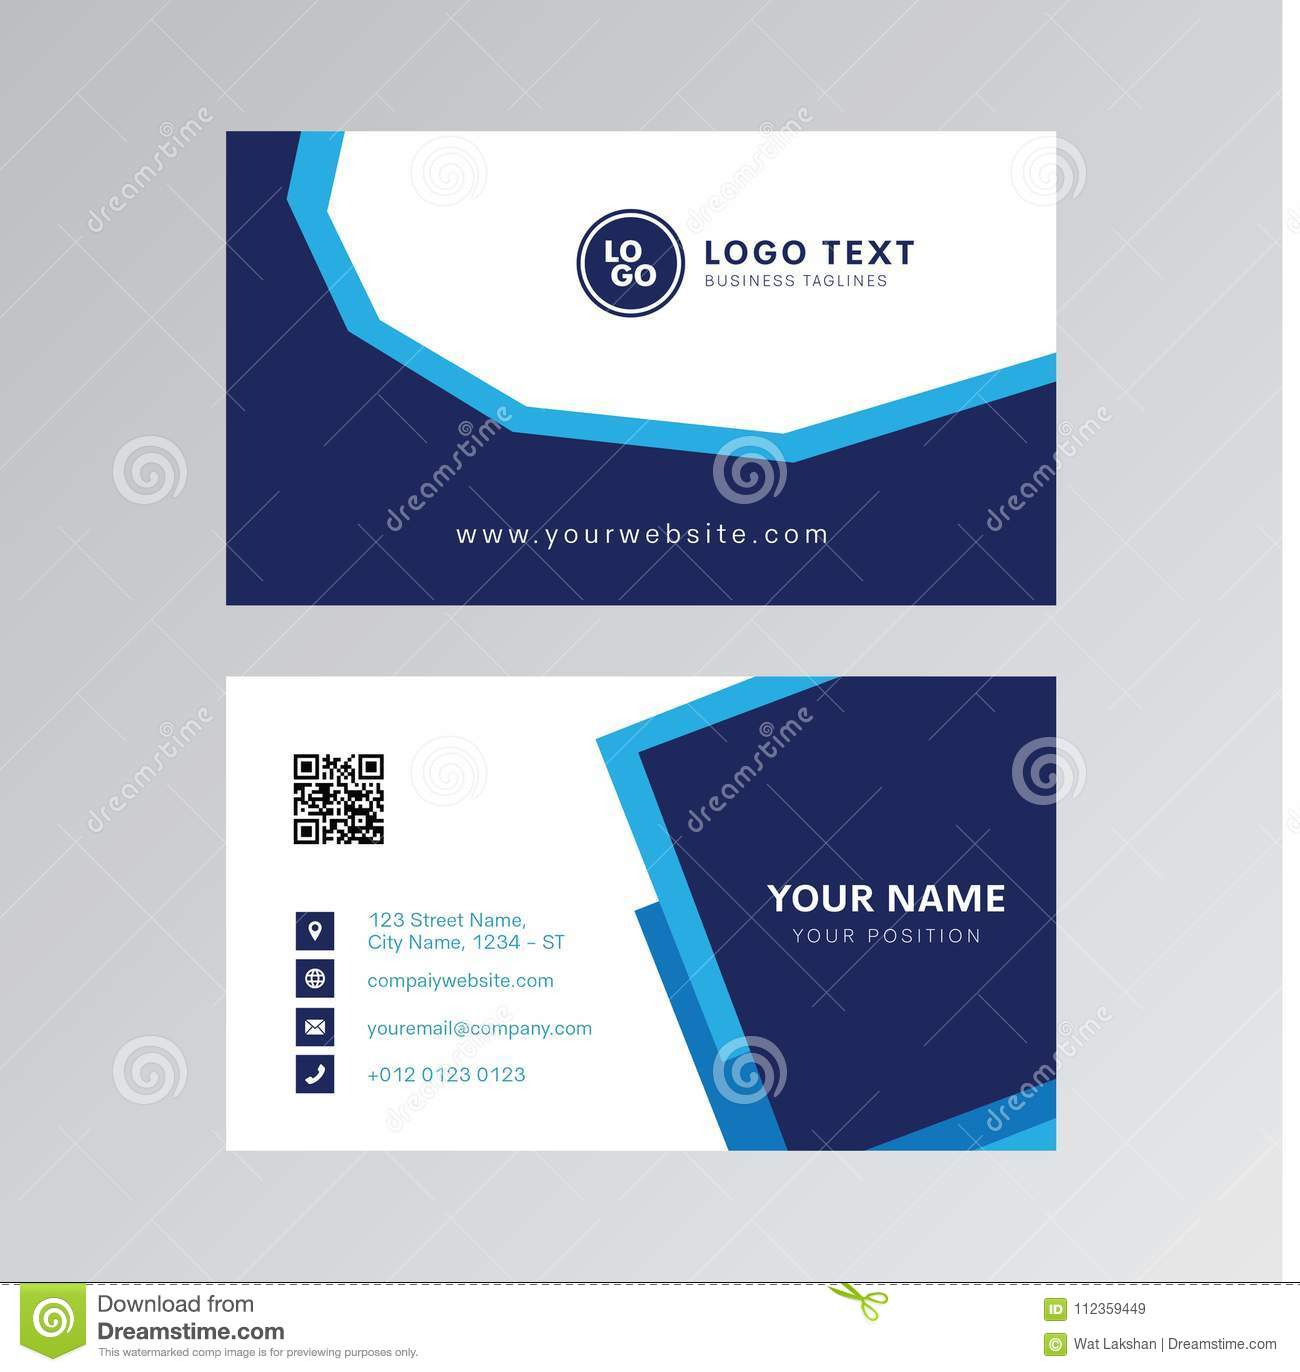 Professional modern blue color business card invitation card design professional modern blue color business card invitation card design professional business card vector design invitation card template modern designnvector reheart Choice Image